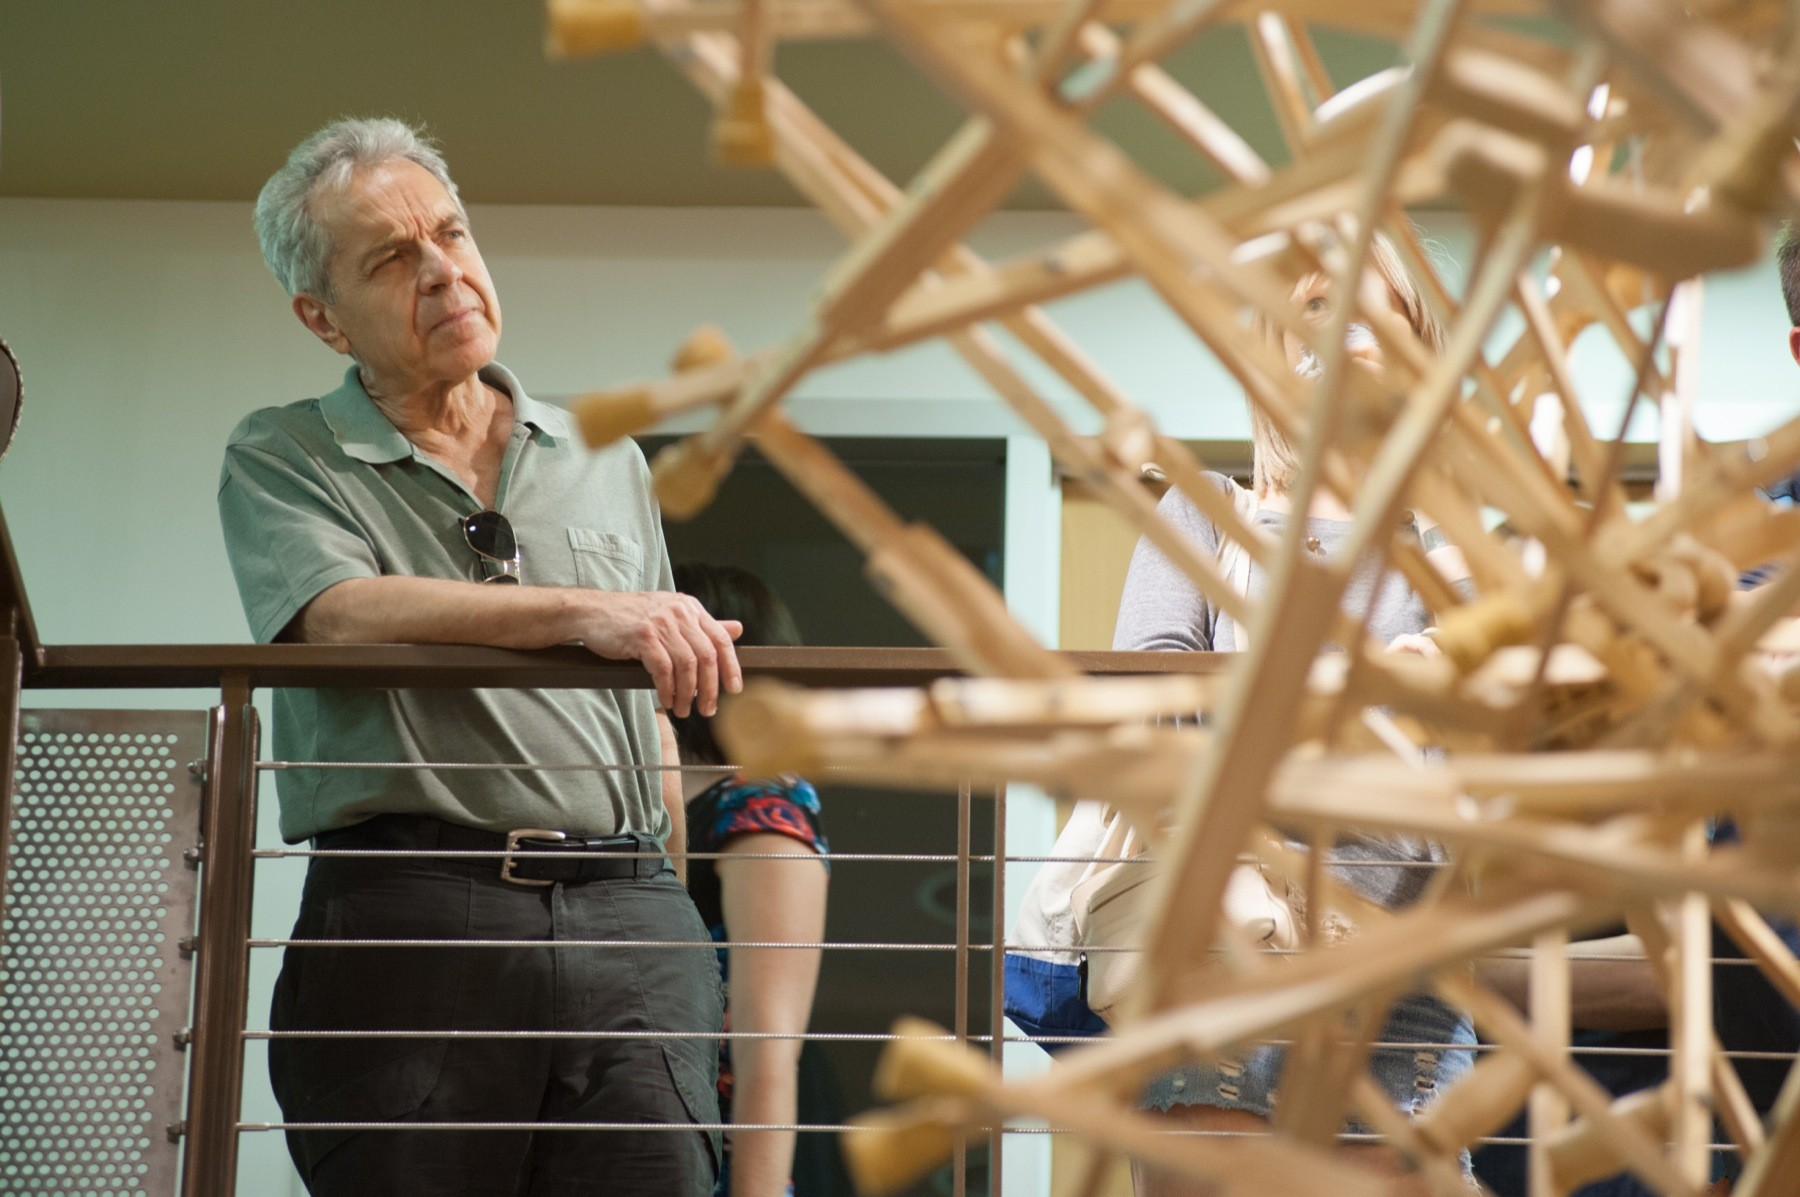 A man looking at a hanging sculpture made out of wooden crutches